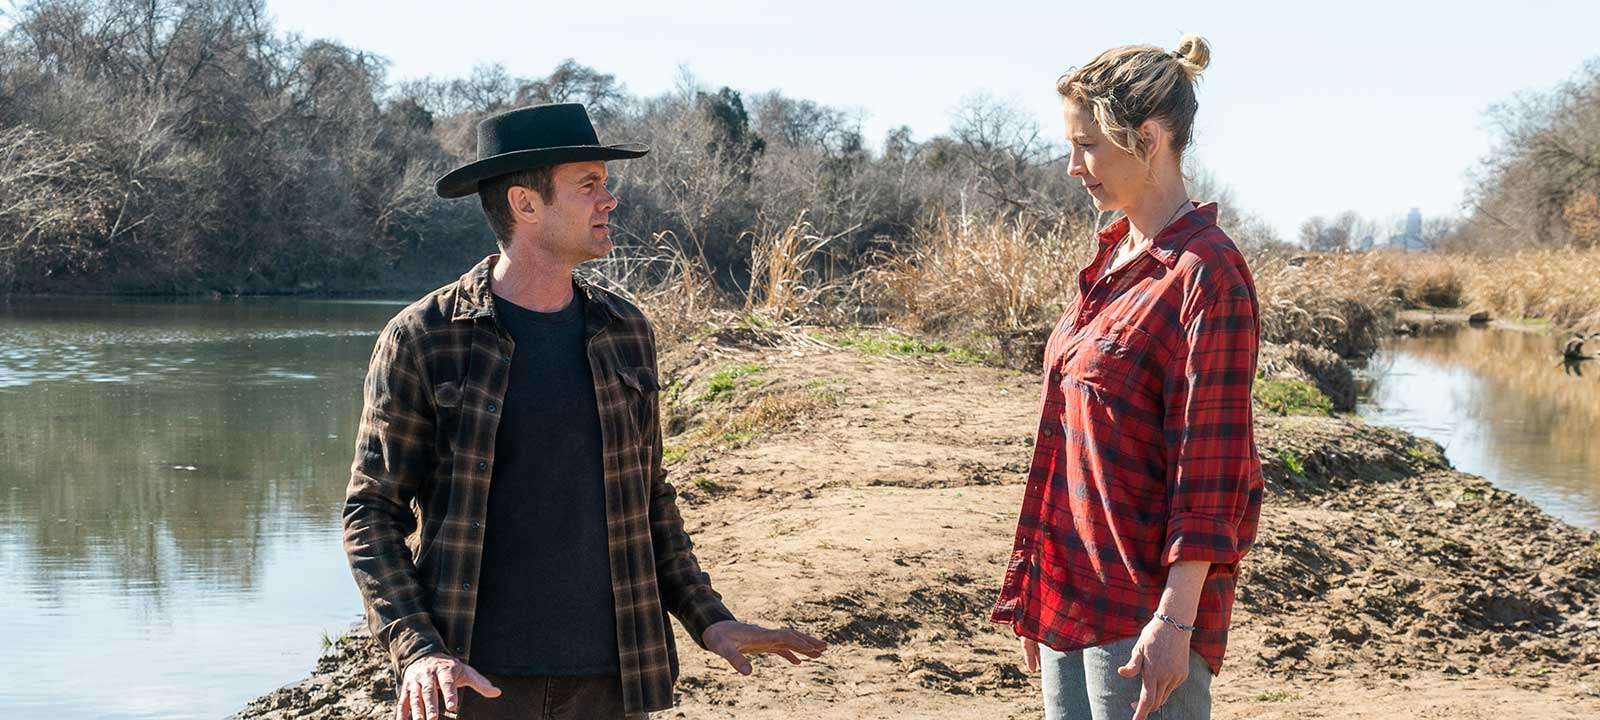 fear-the-walking-dead-episiode-405-john-dillahunt-800×600-interview